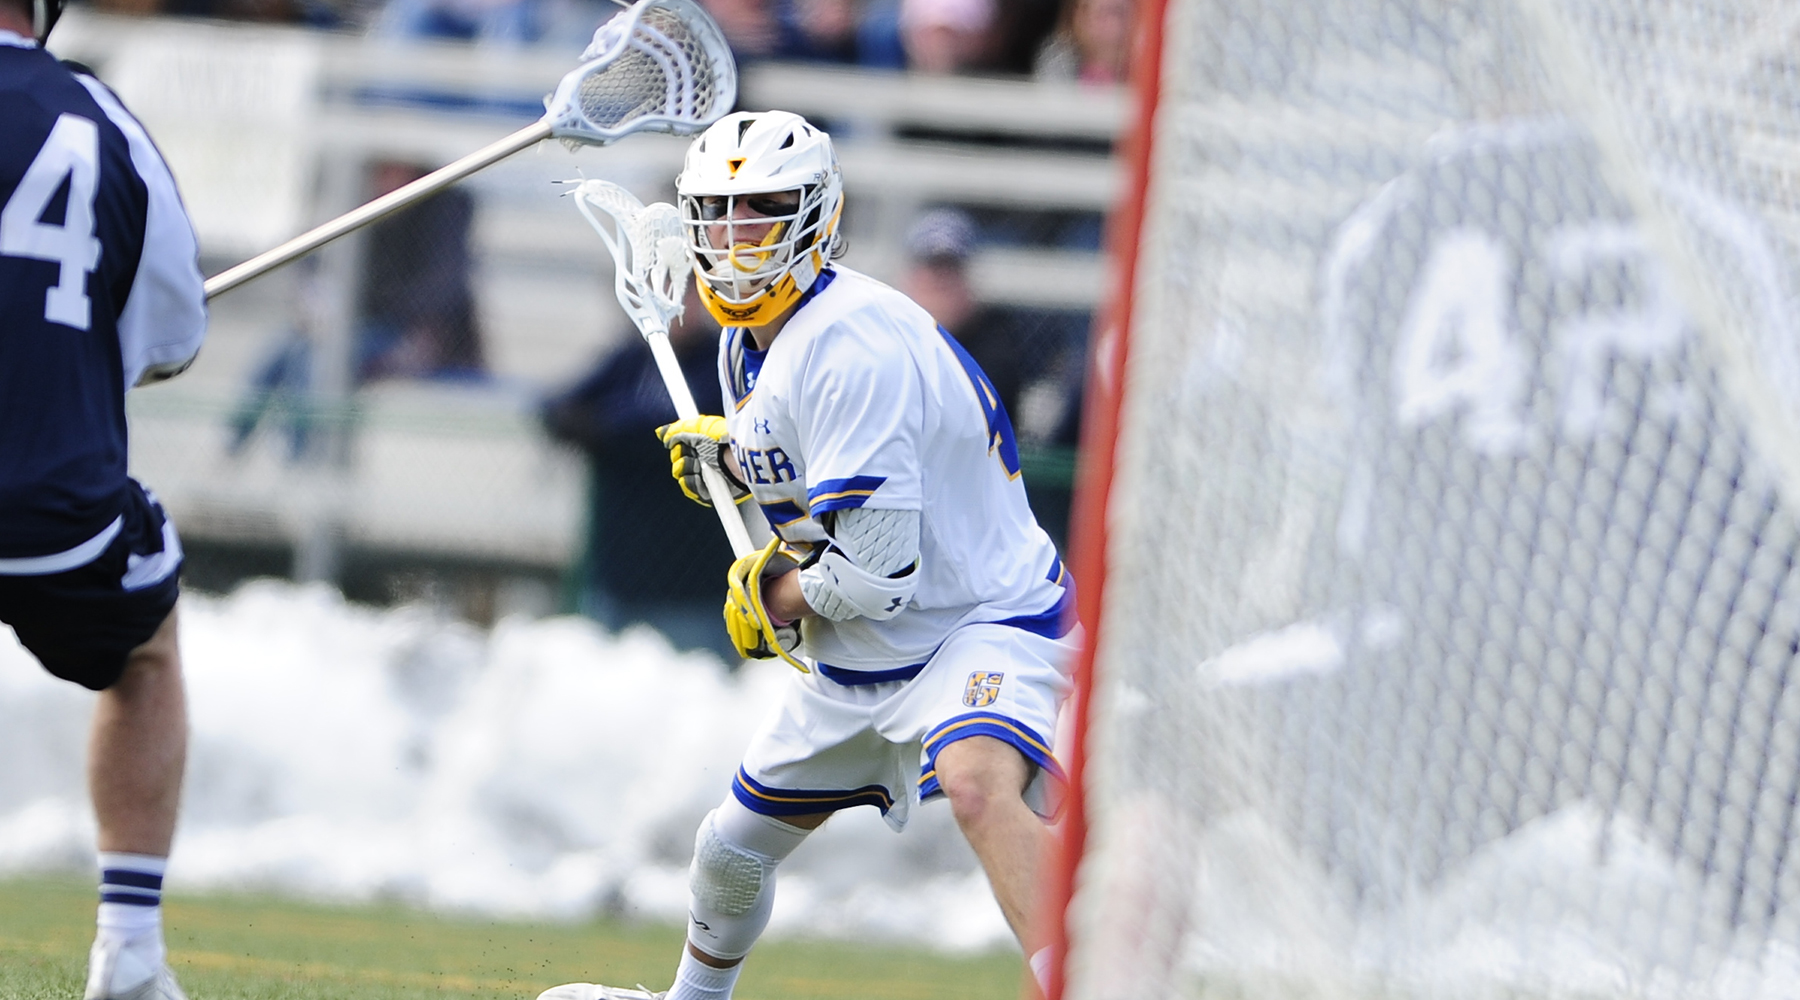 Harnish Nets Hat-Trick, as Men's Lacrosse Opens Season with 10-5 Win over Hood